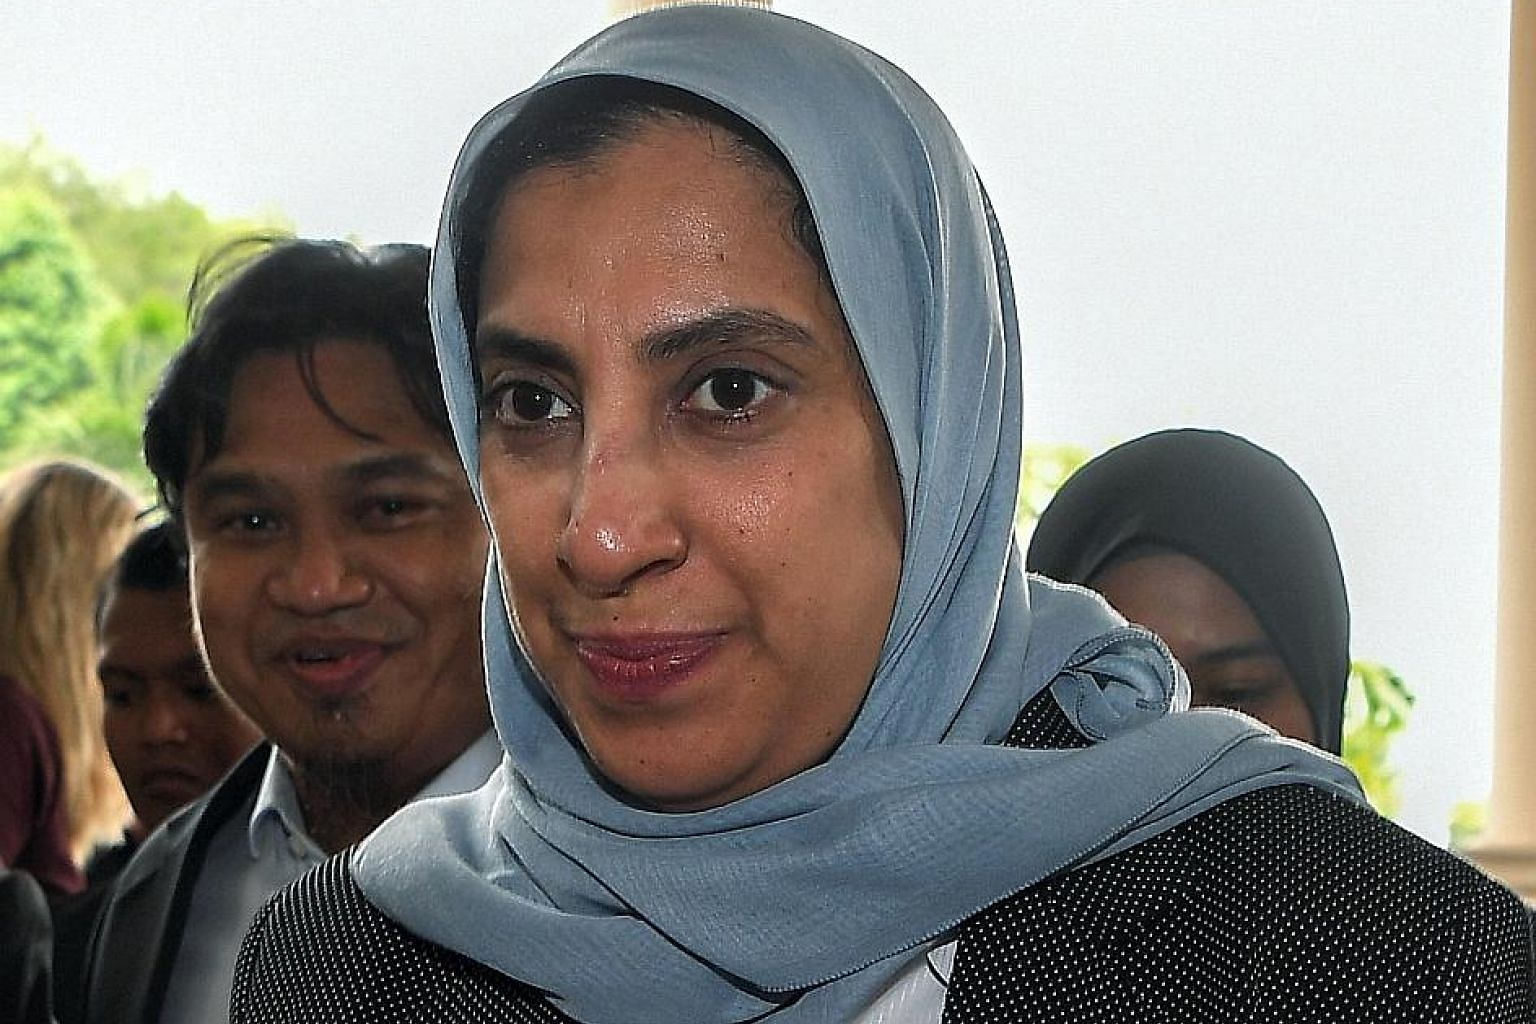 Ms Latheefa Koya was appointed to lead the Malaysian Anti-Corruption Commission last June by then Premier Mahathir Mohamad. During her tenure, she has seen several high-profile probes involving politicians from former ruling party Umno, including for